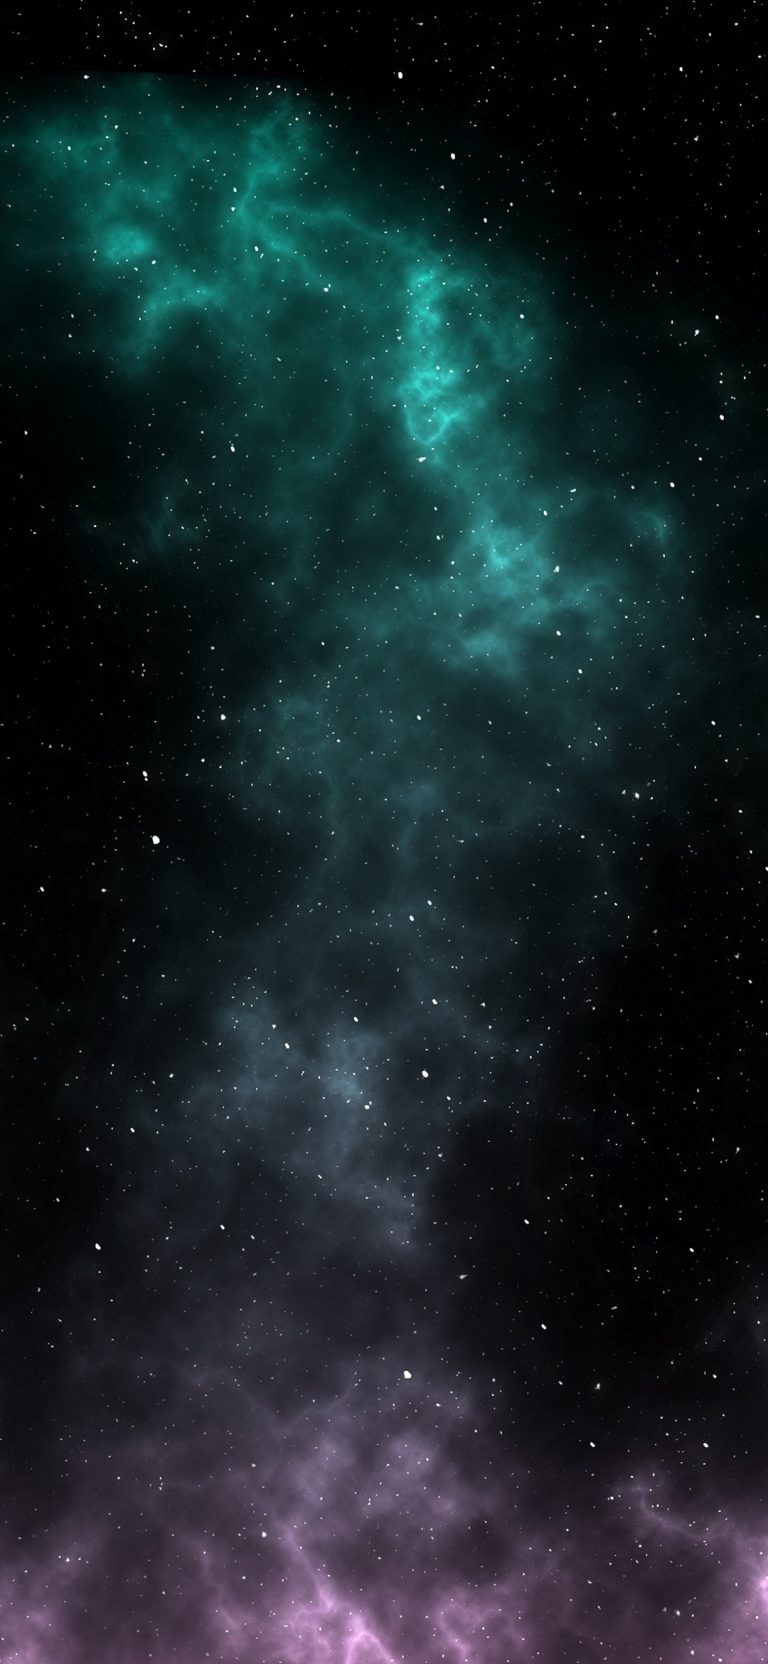 Space Phone Wallpaper 091 1080x2340 768x1664